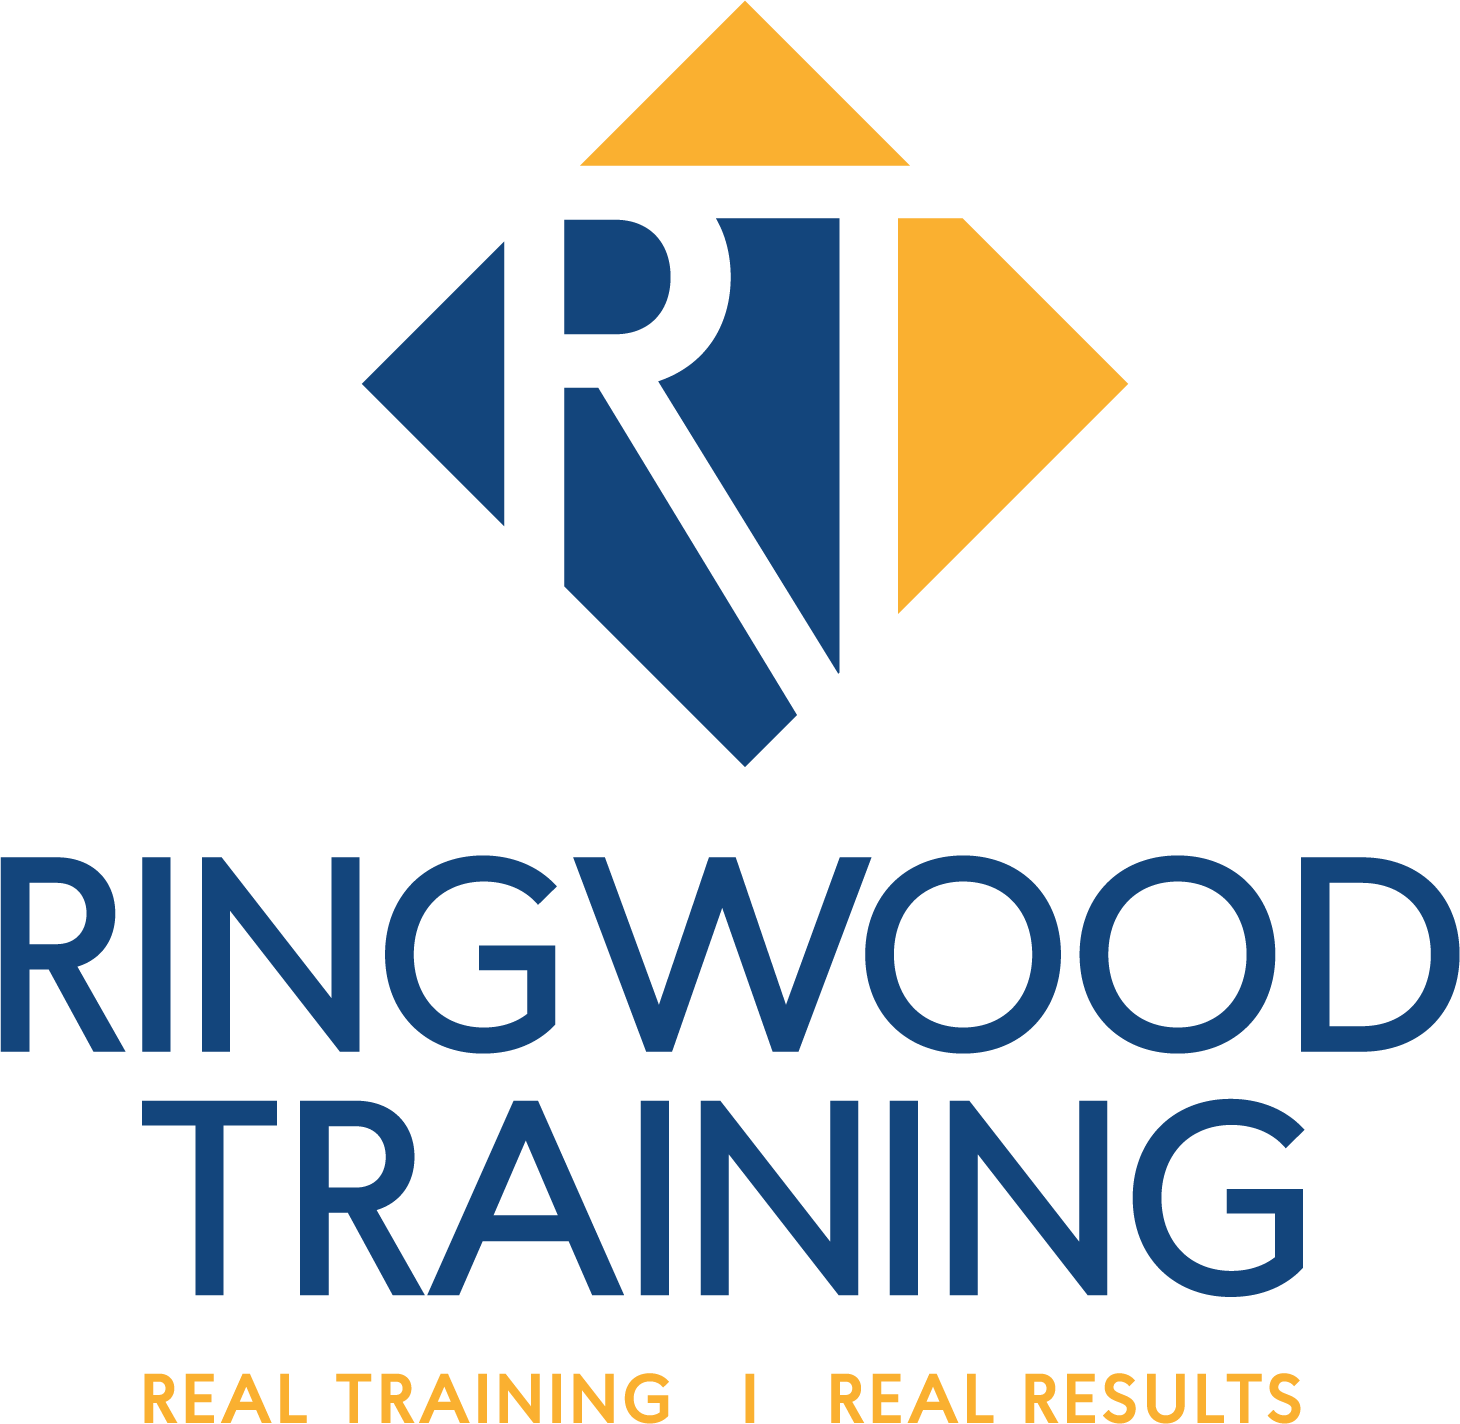 Academic Archives - Ringwood Training - RT